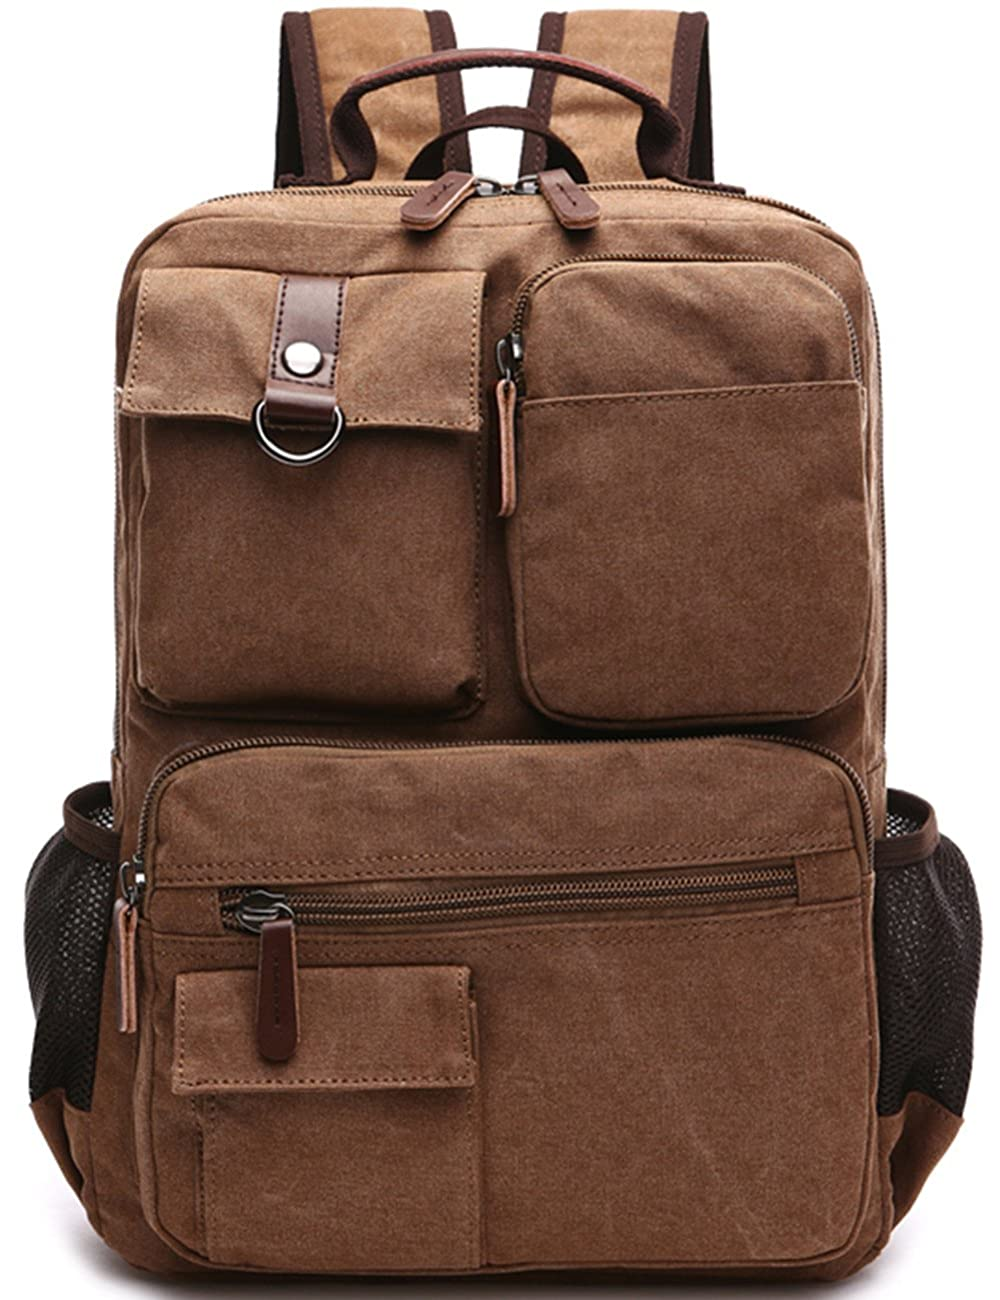 Aidonger Vintage Canvas School Backpack Laptop Backpack 1